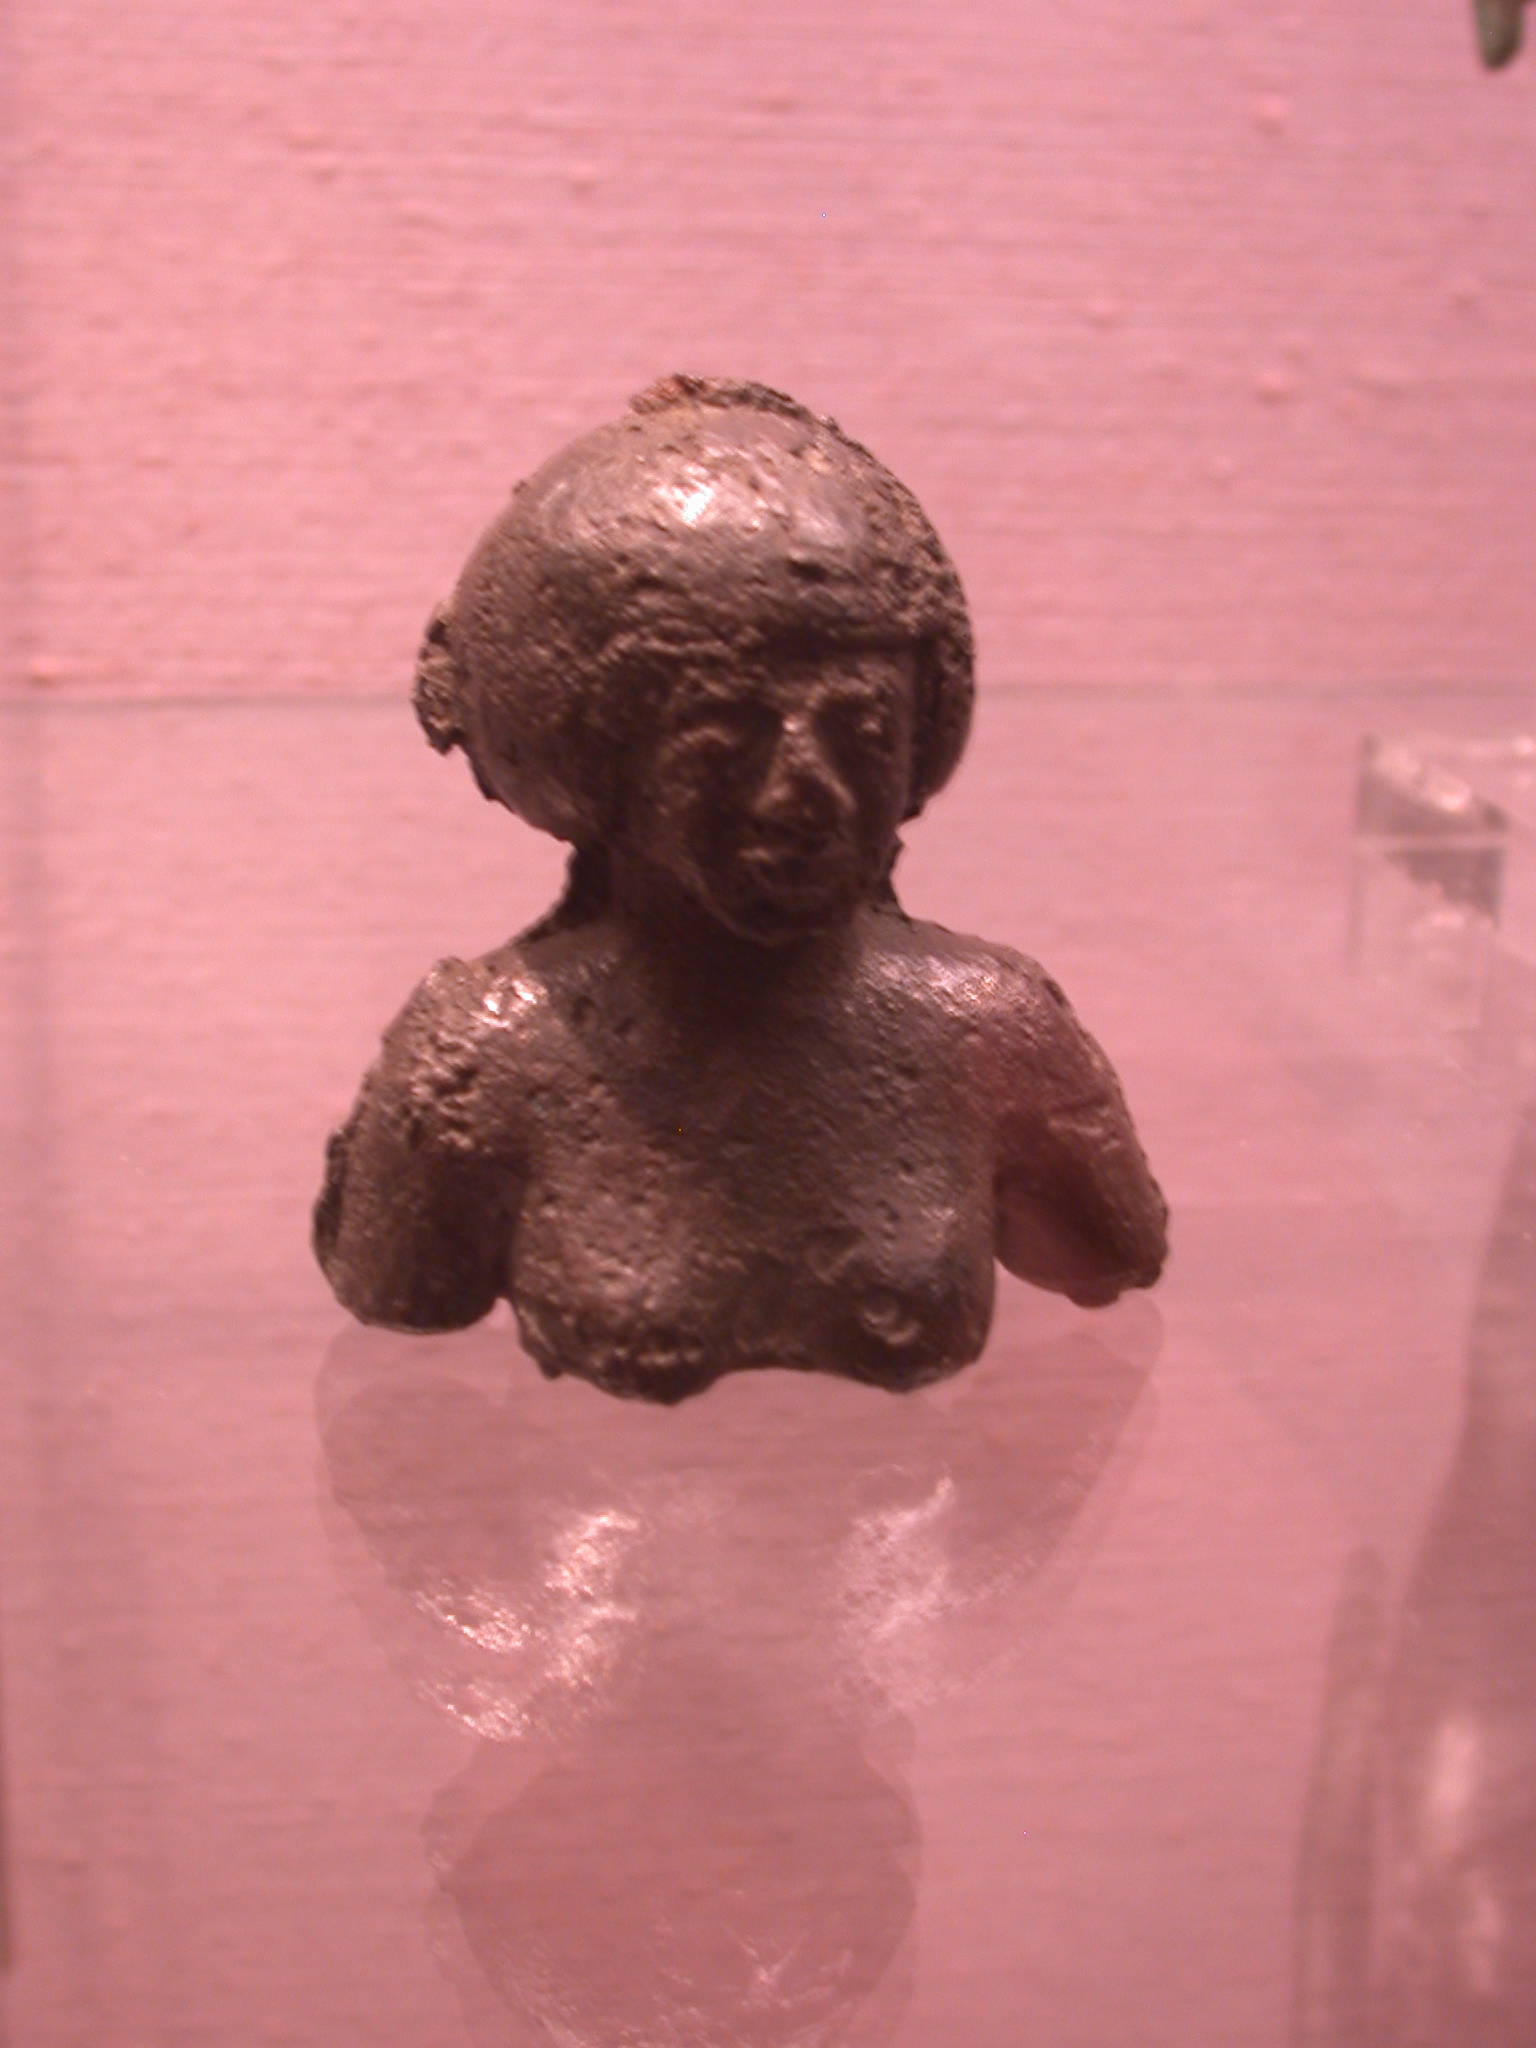 Nubian Bust of Female, Copper Alloy, 25th Dynasty Sudan, Fitzwilliam Museum, Cambridge, England